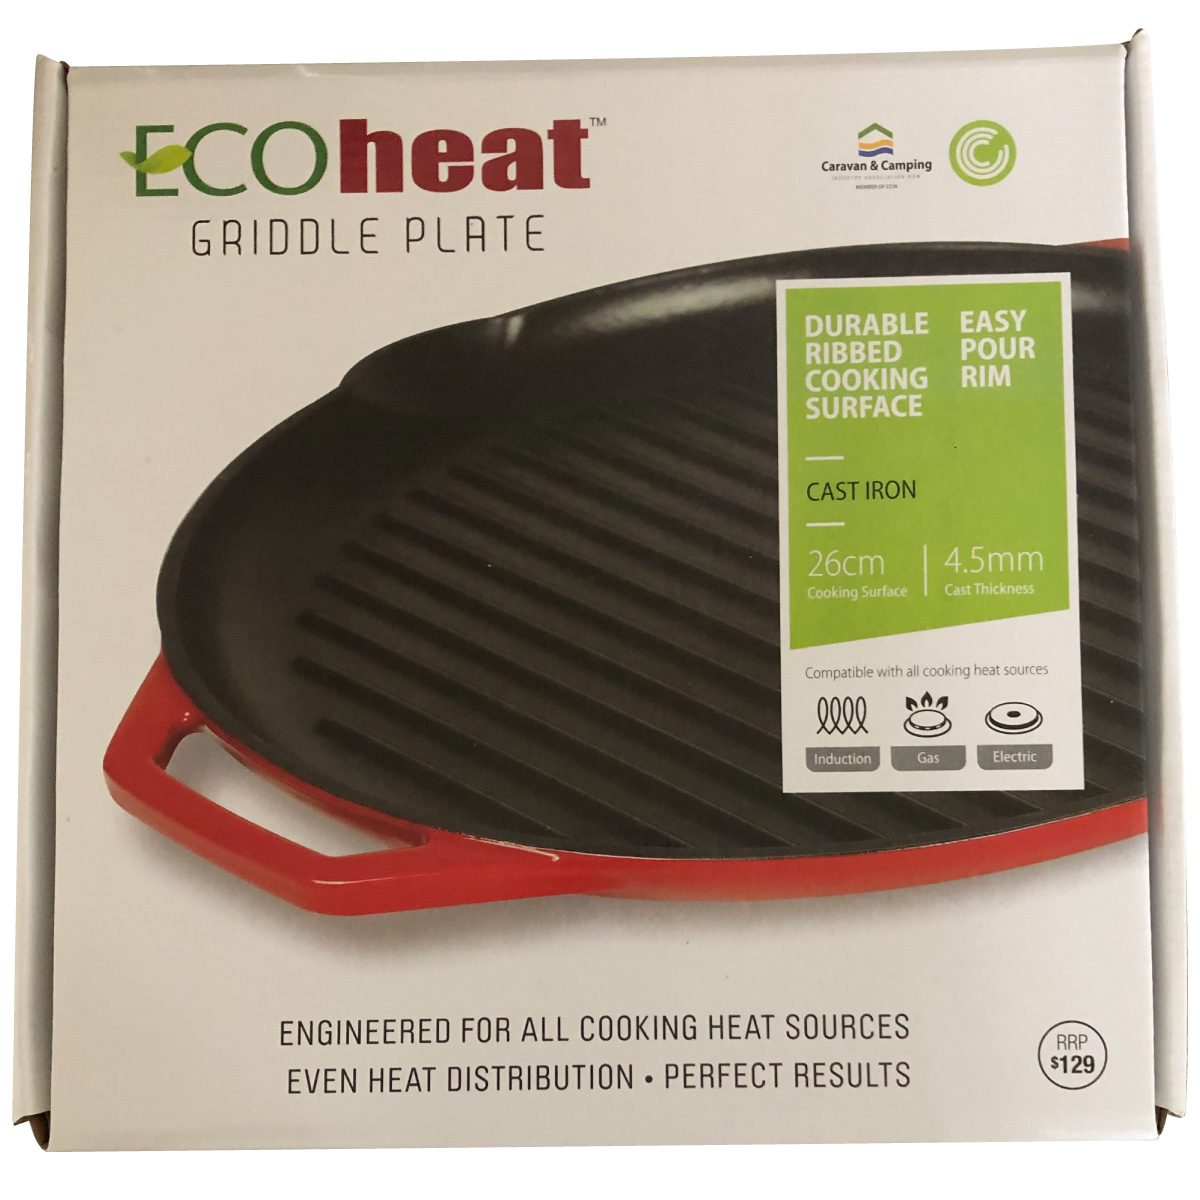 Ecoheat griddle plate